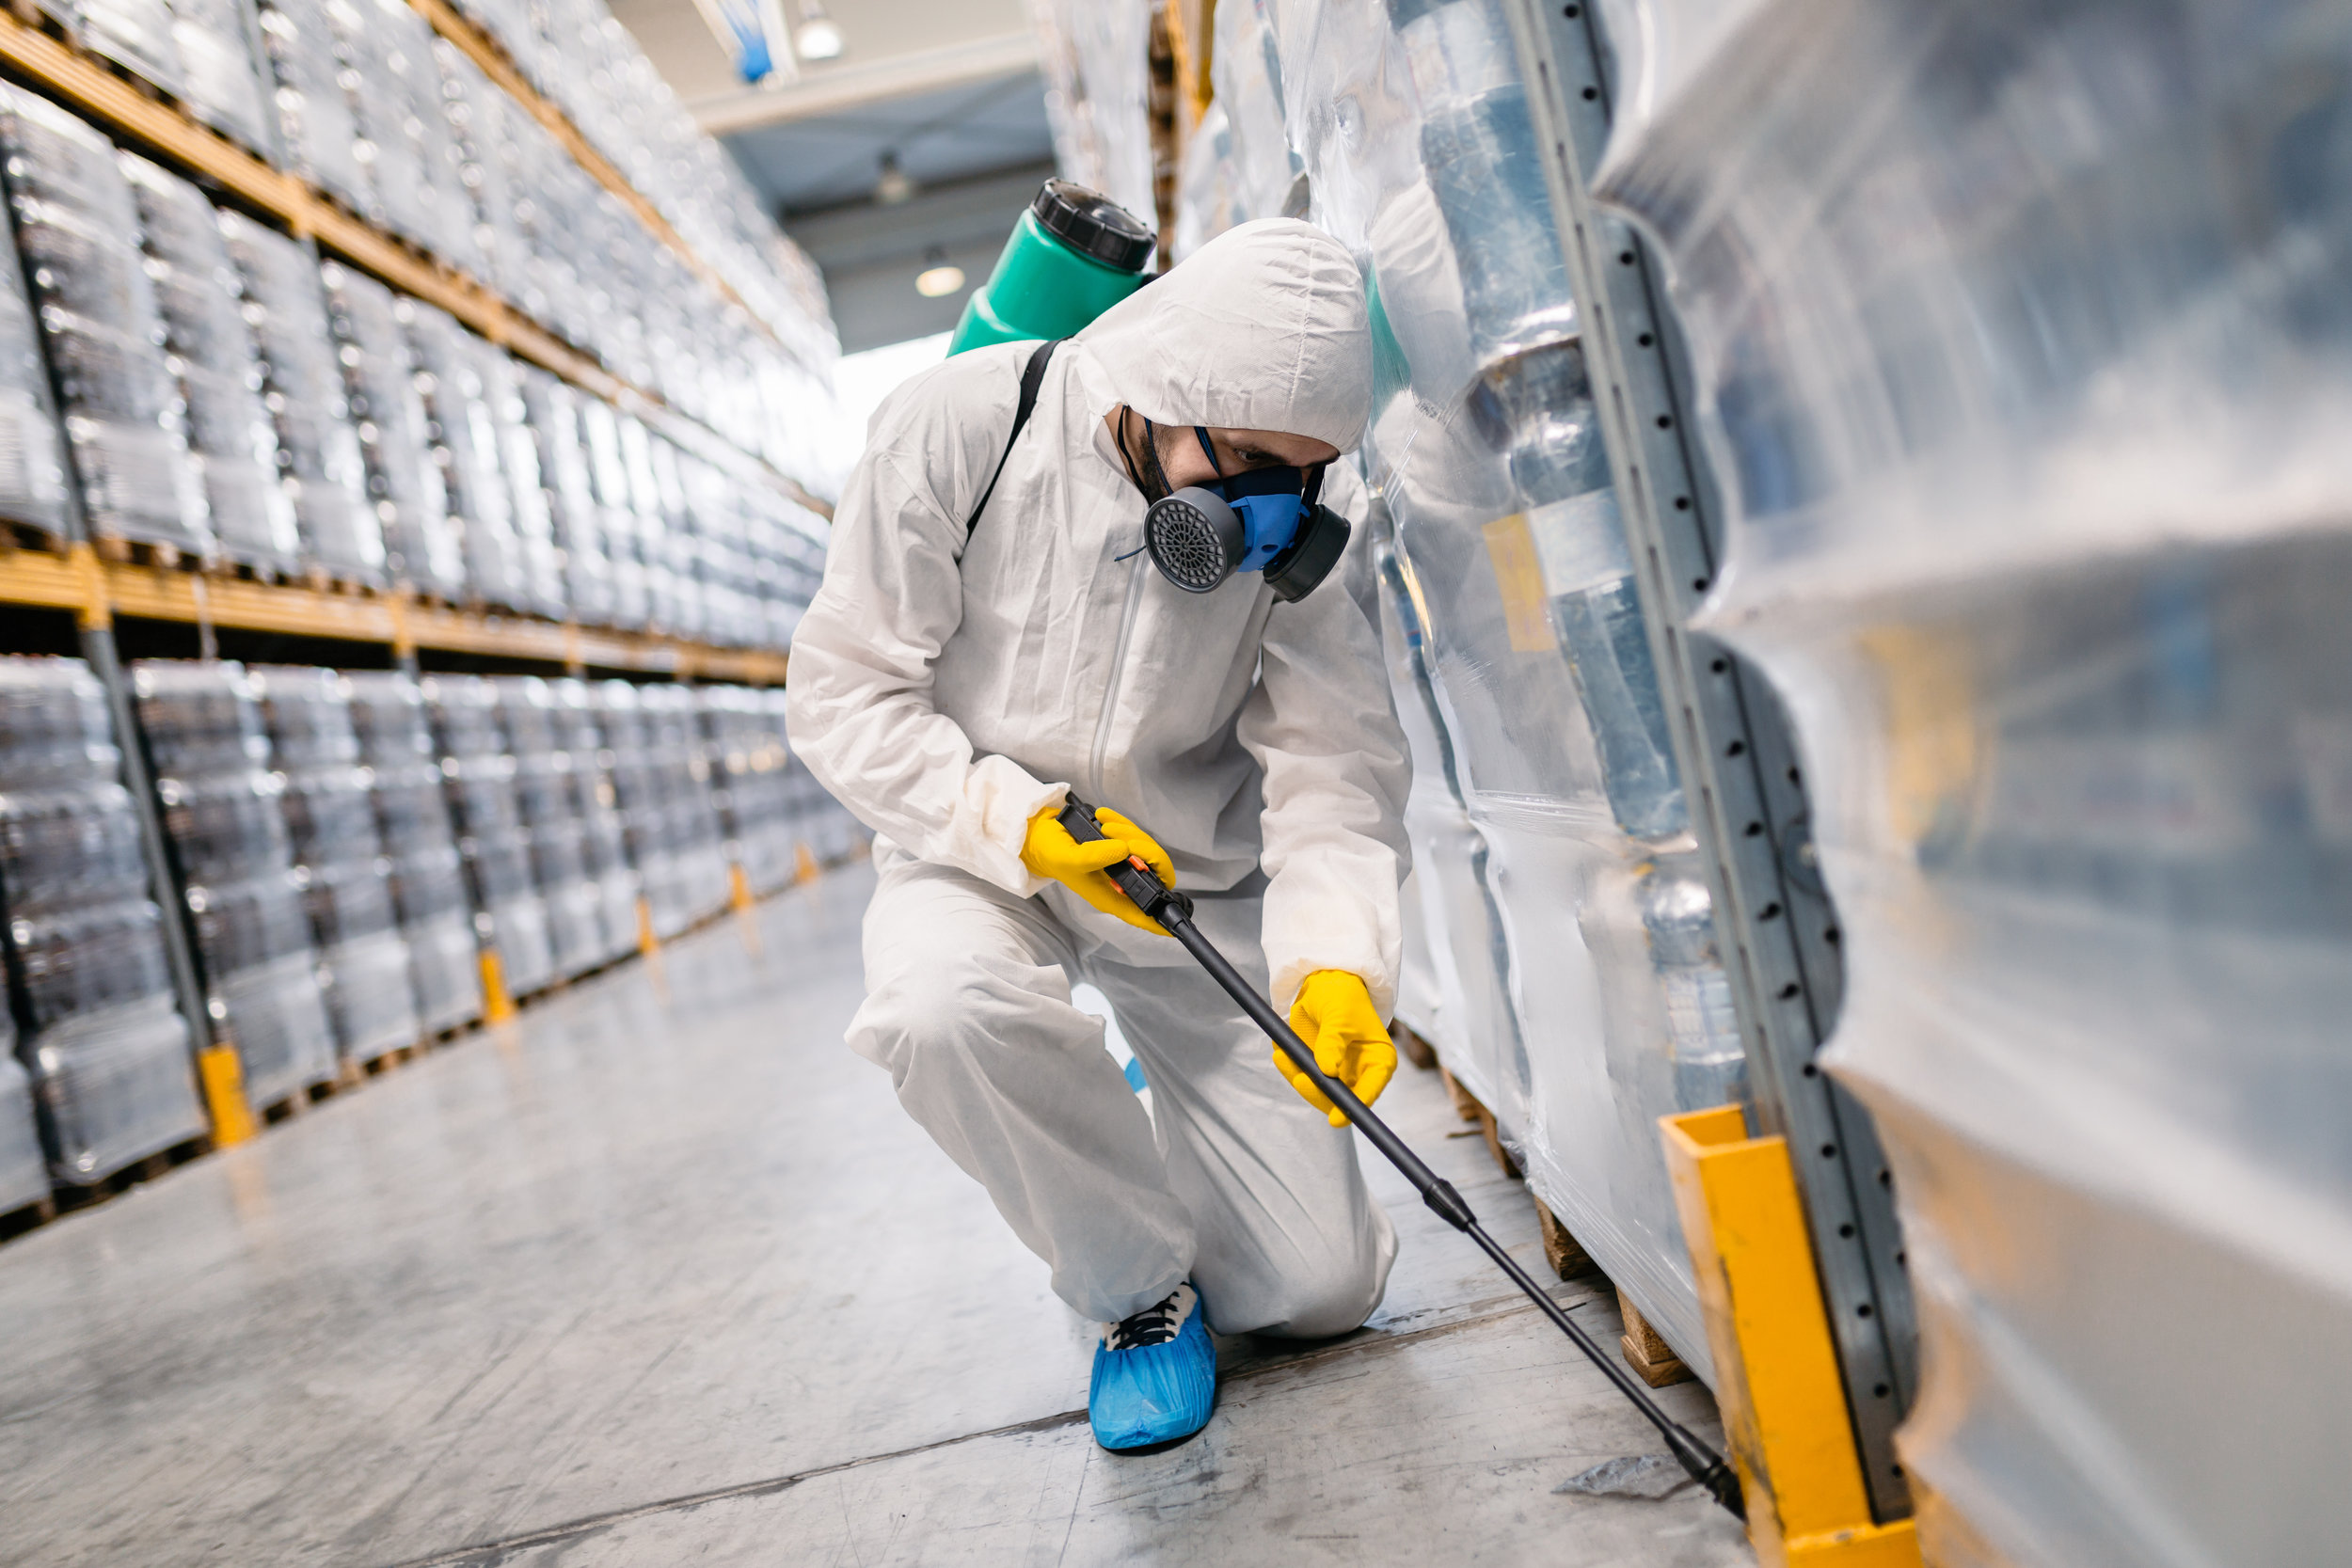 POSITIVE PEST SOLUTIONS IN specialized facilities and sensitive locations has a RAPID response team that is ready 24 hours a day 7 days a week (833) 777-4968. There are various types of specialized services including: